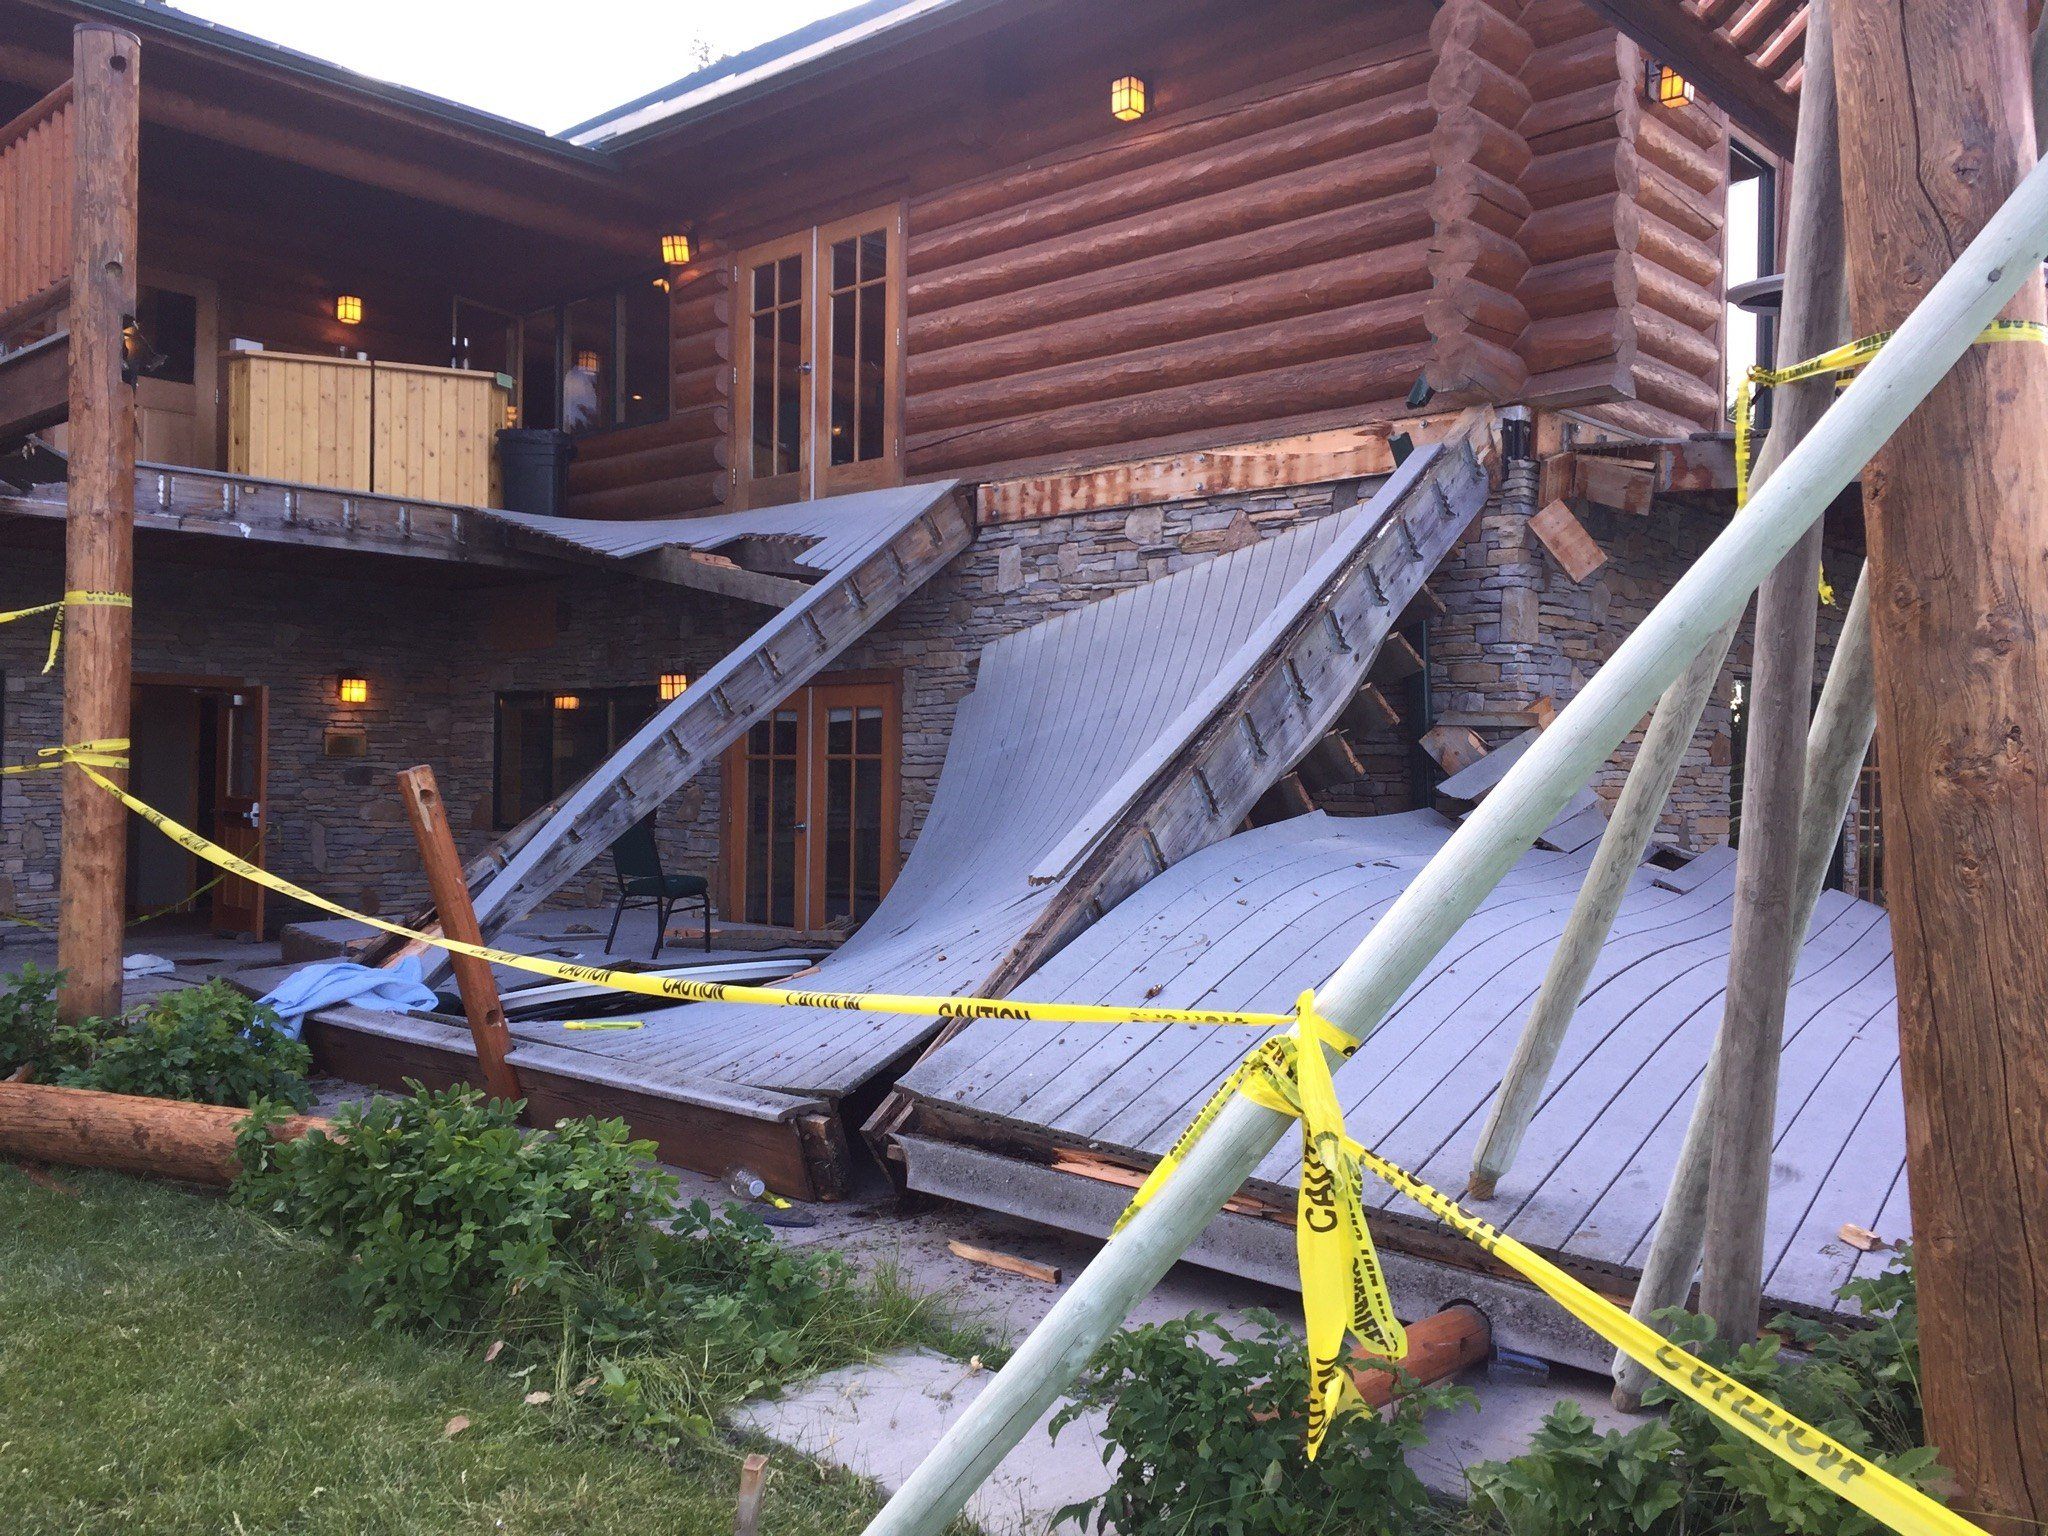 Authorities say 32 injured in deck collapse